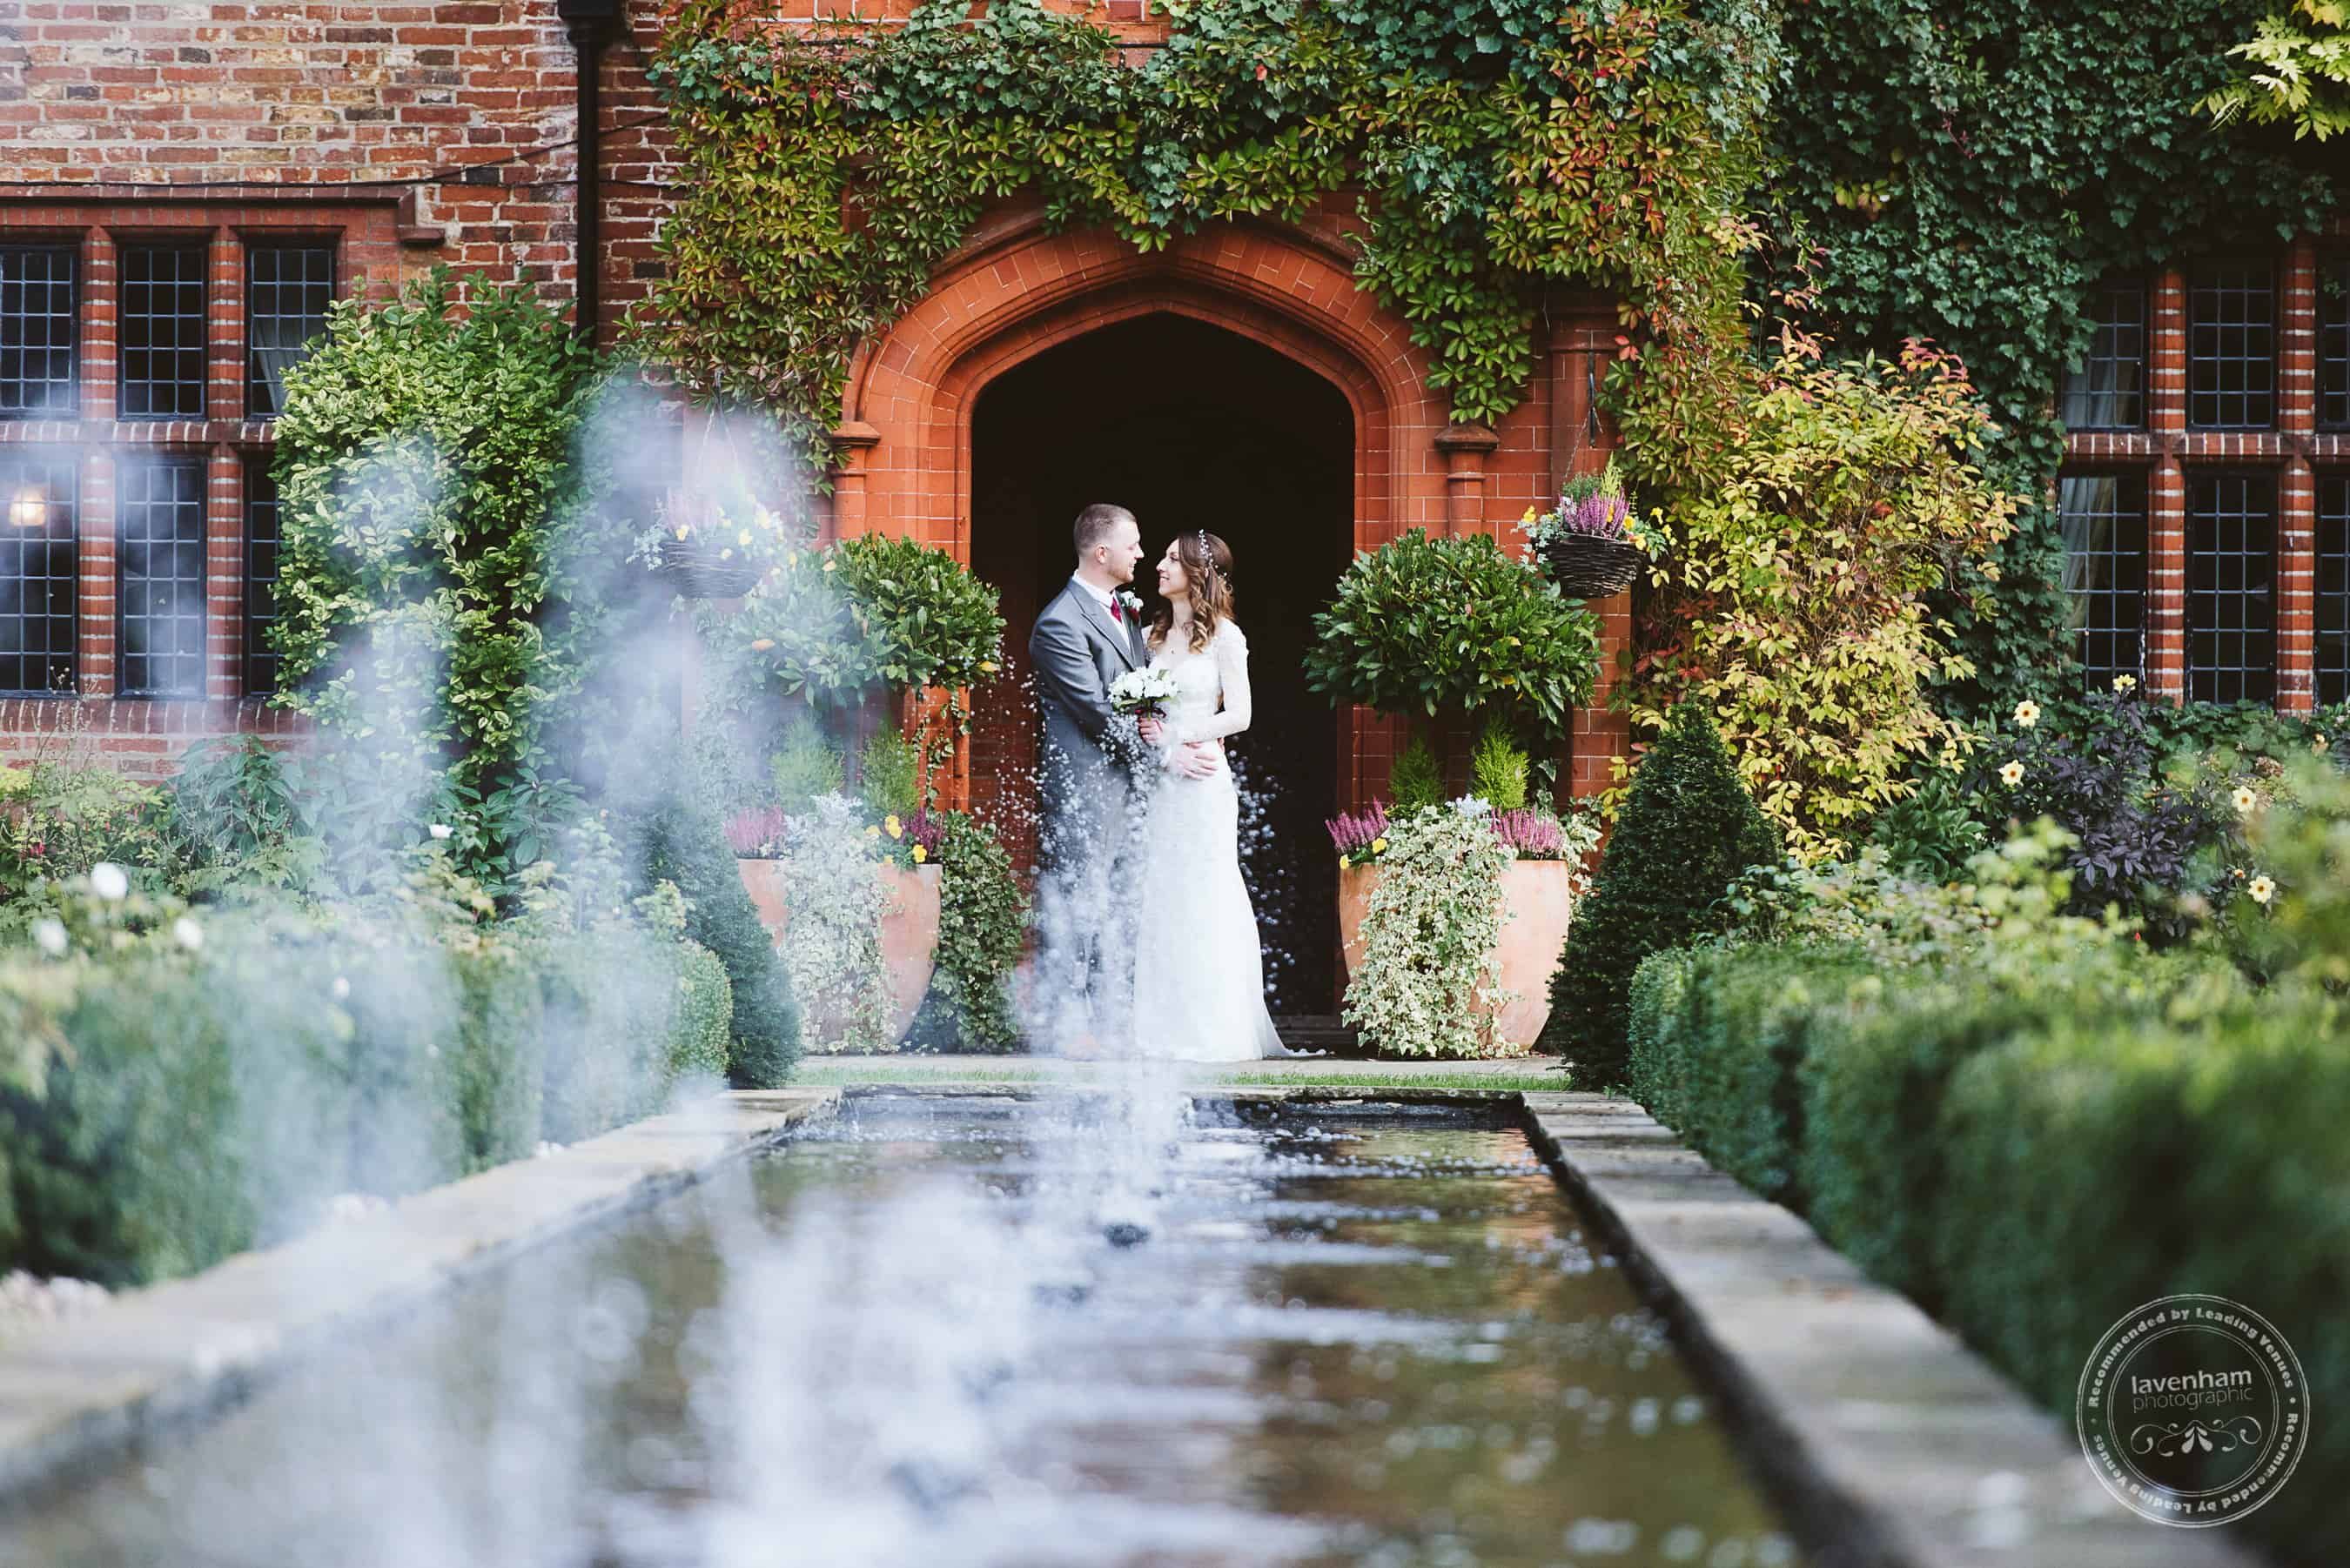 041118 Woodhall Manor Wedding Photography by Lavenham Photographic 076